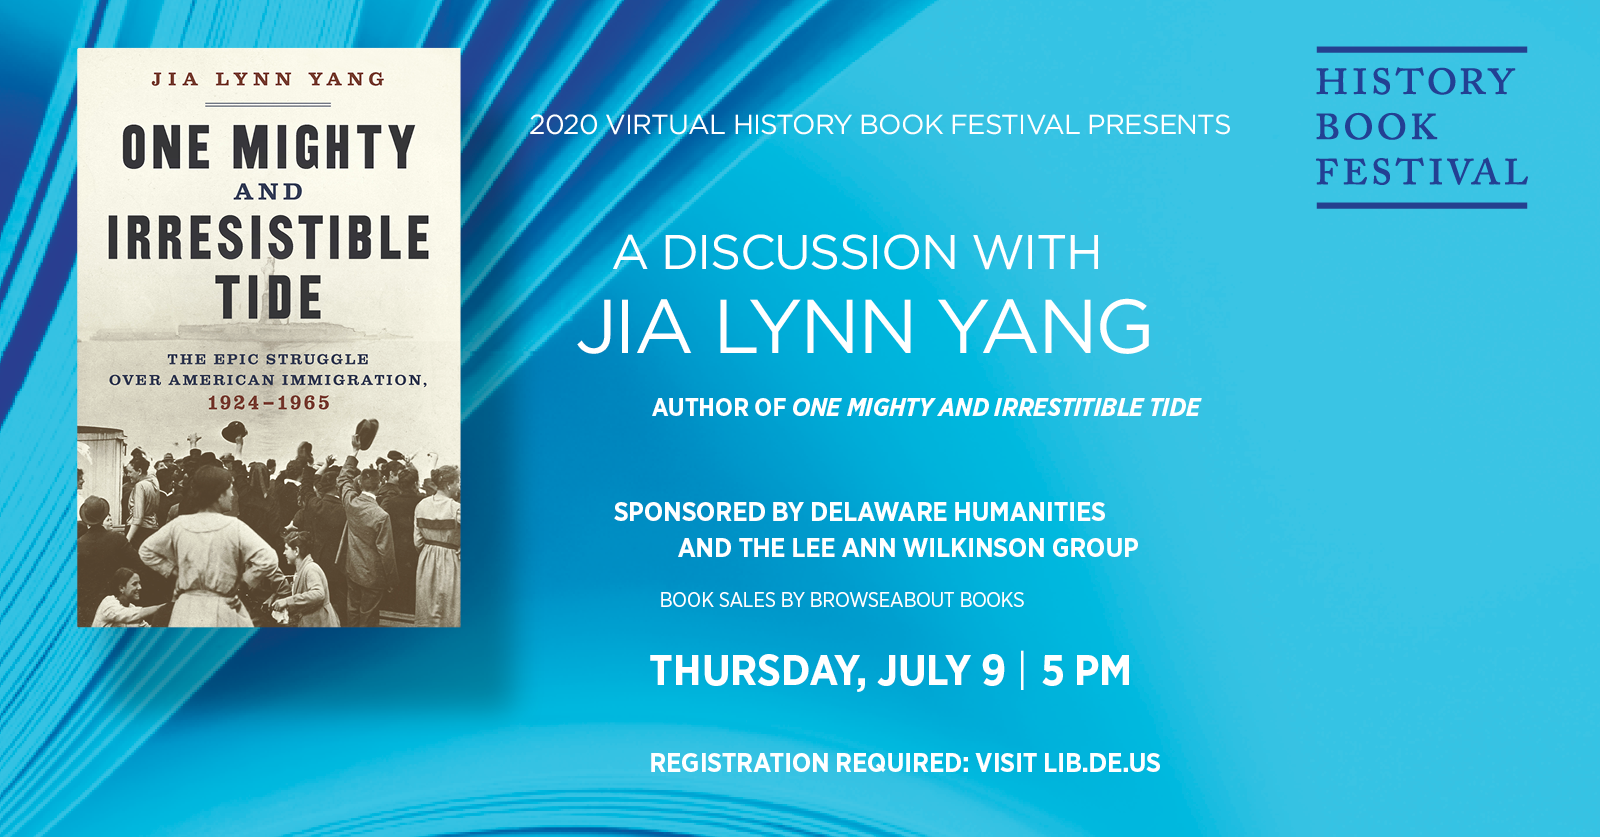 History Book Festival presents Jia Lynn Yang | One Mighty and Irresistible Tide